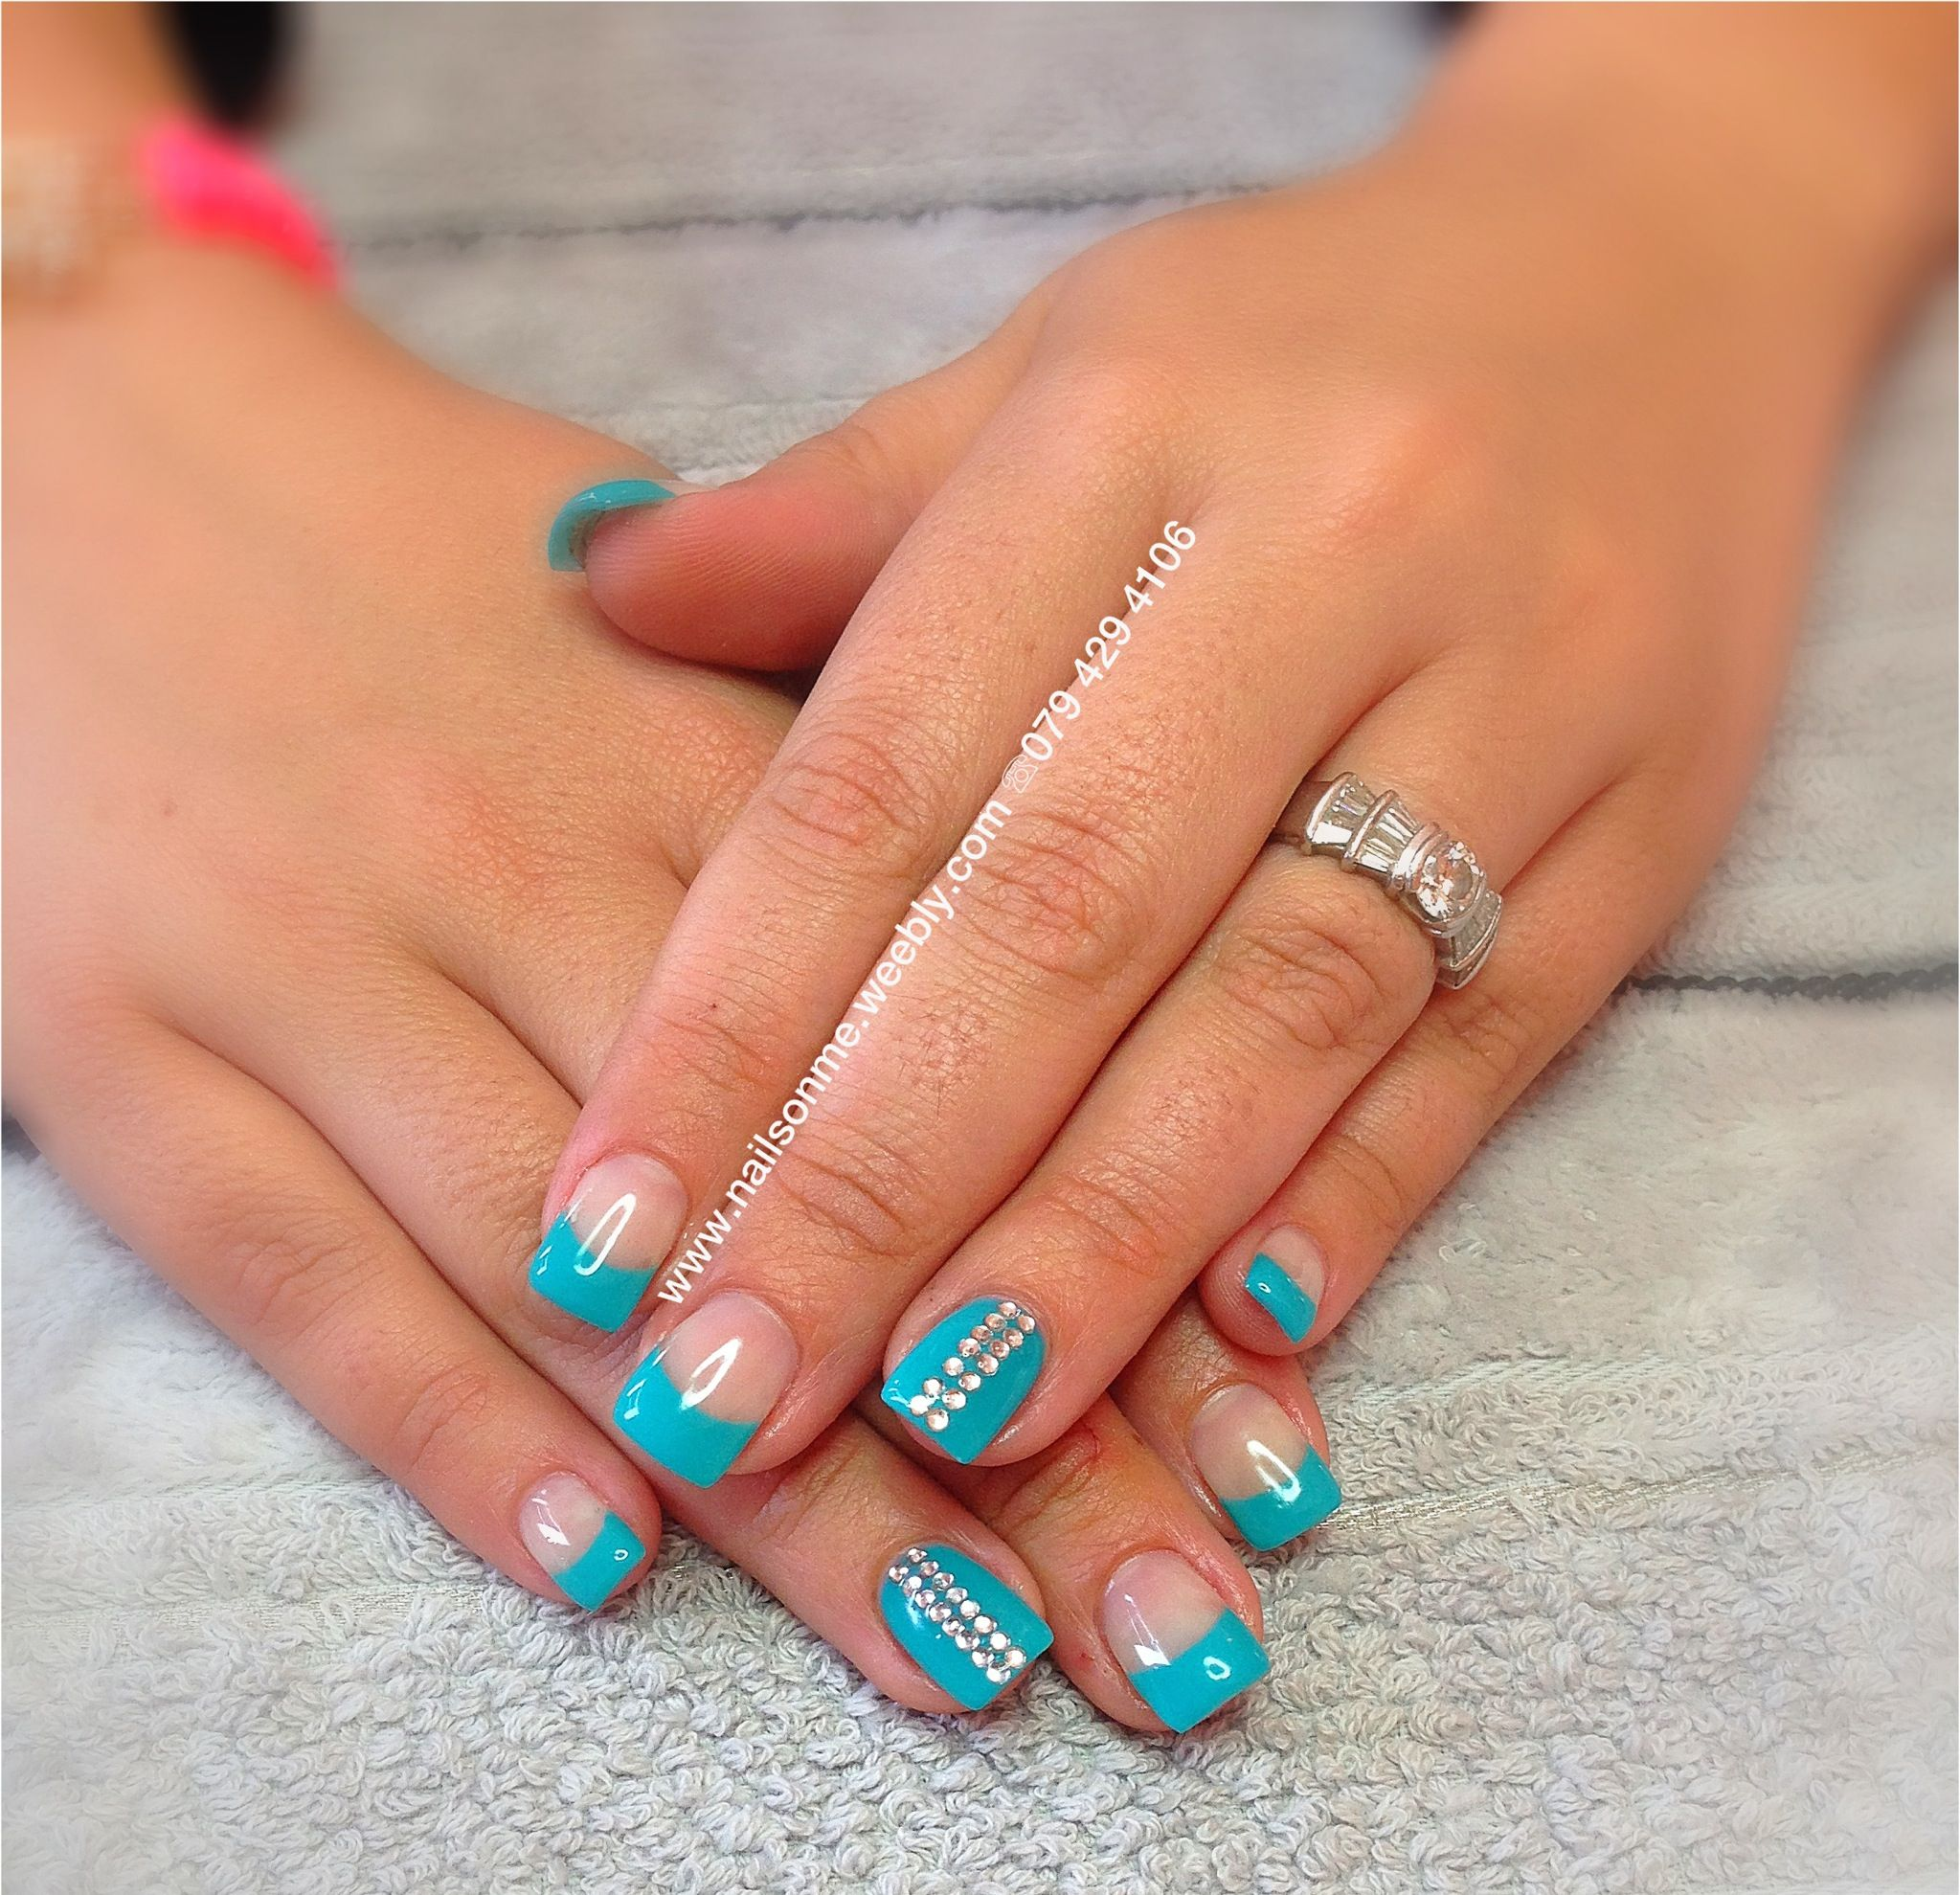 Turquoise french gel nails | Gel and Shellac Nails ...